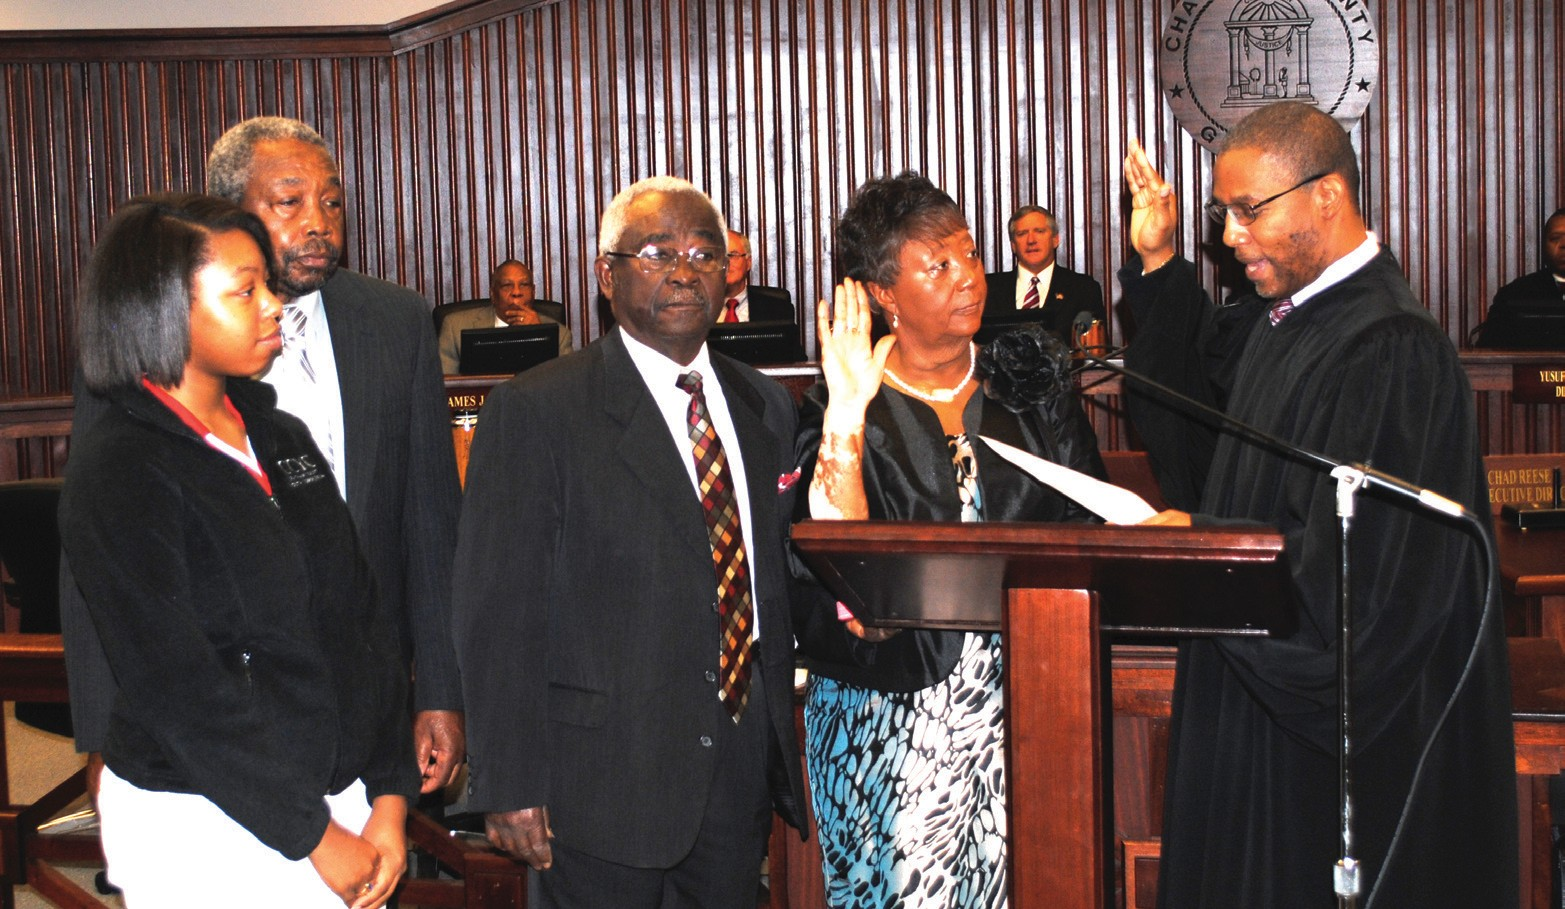 Commissioner Priscilla D. Thomas, District 8, sworn in by The Honorable Judge John E. Morse, Jr.